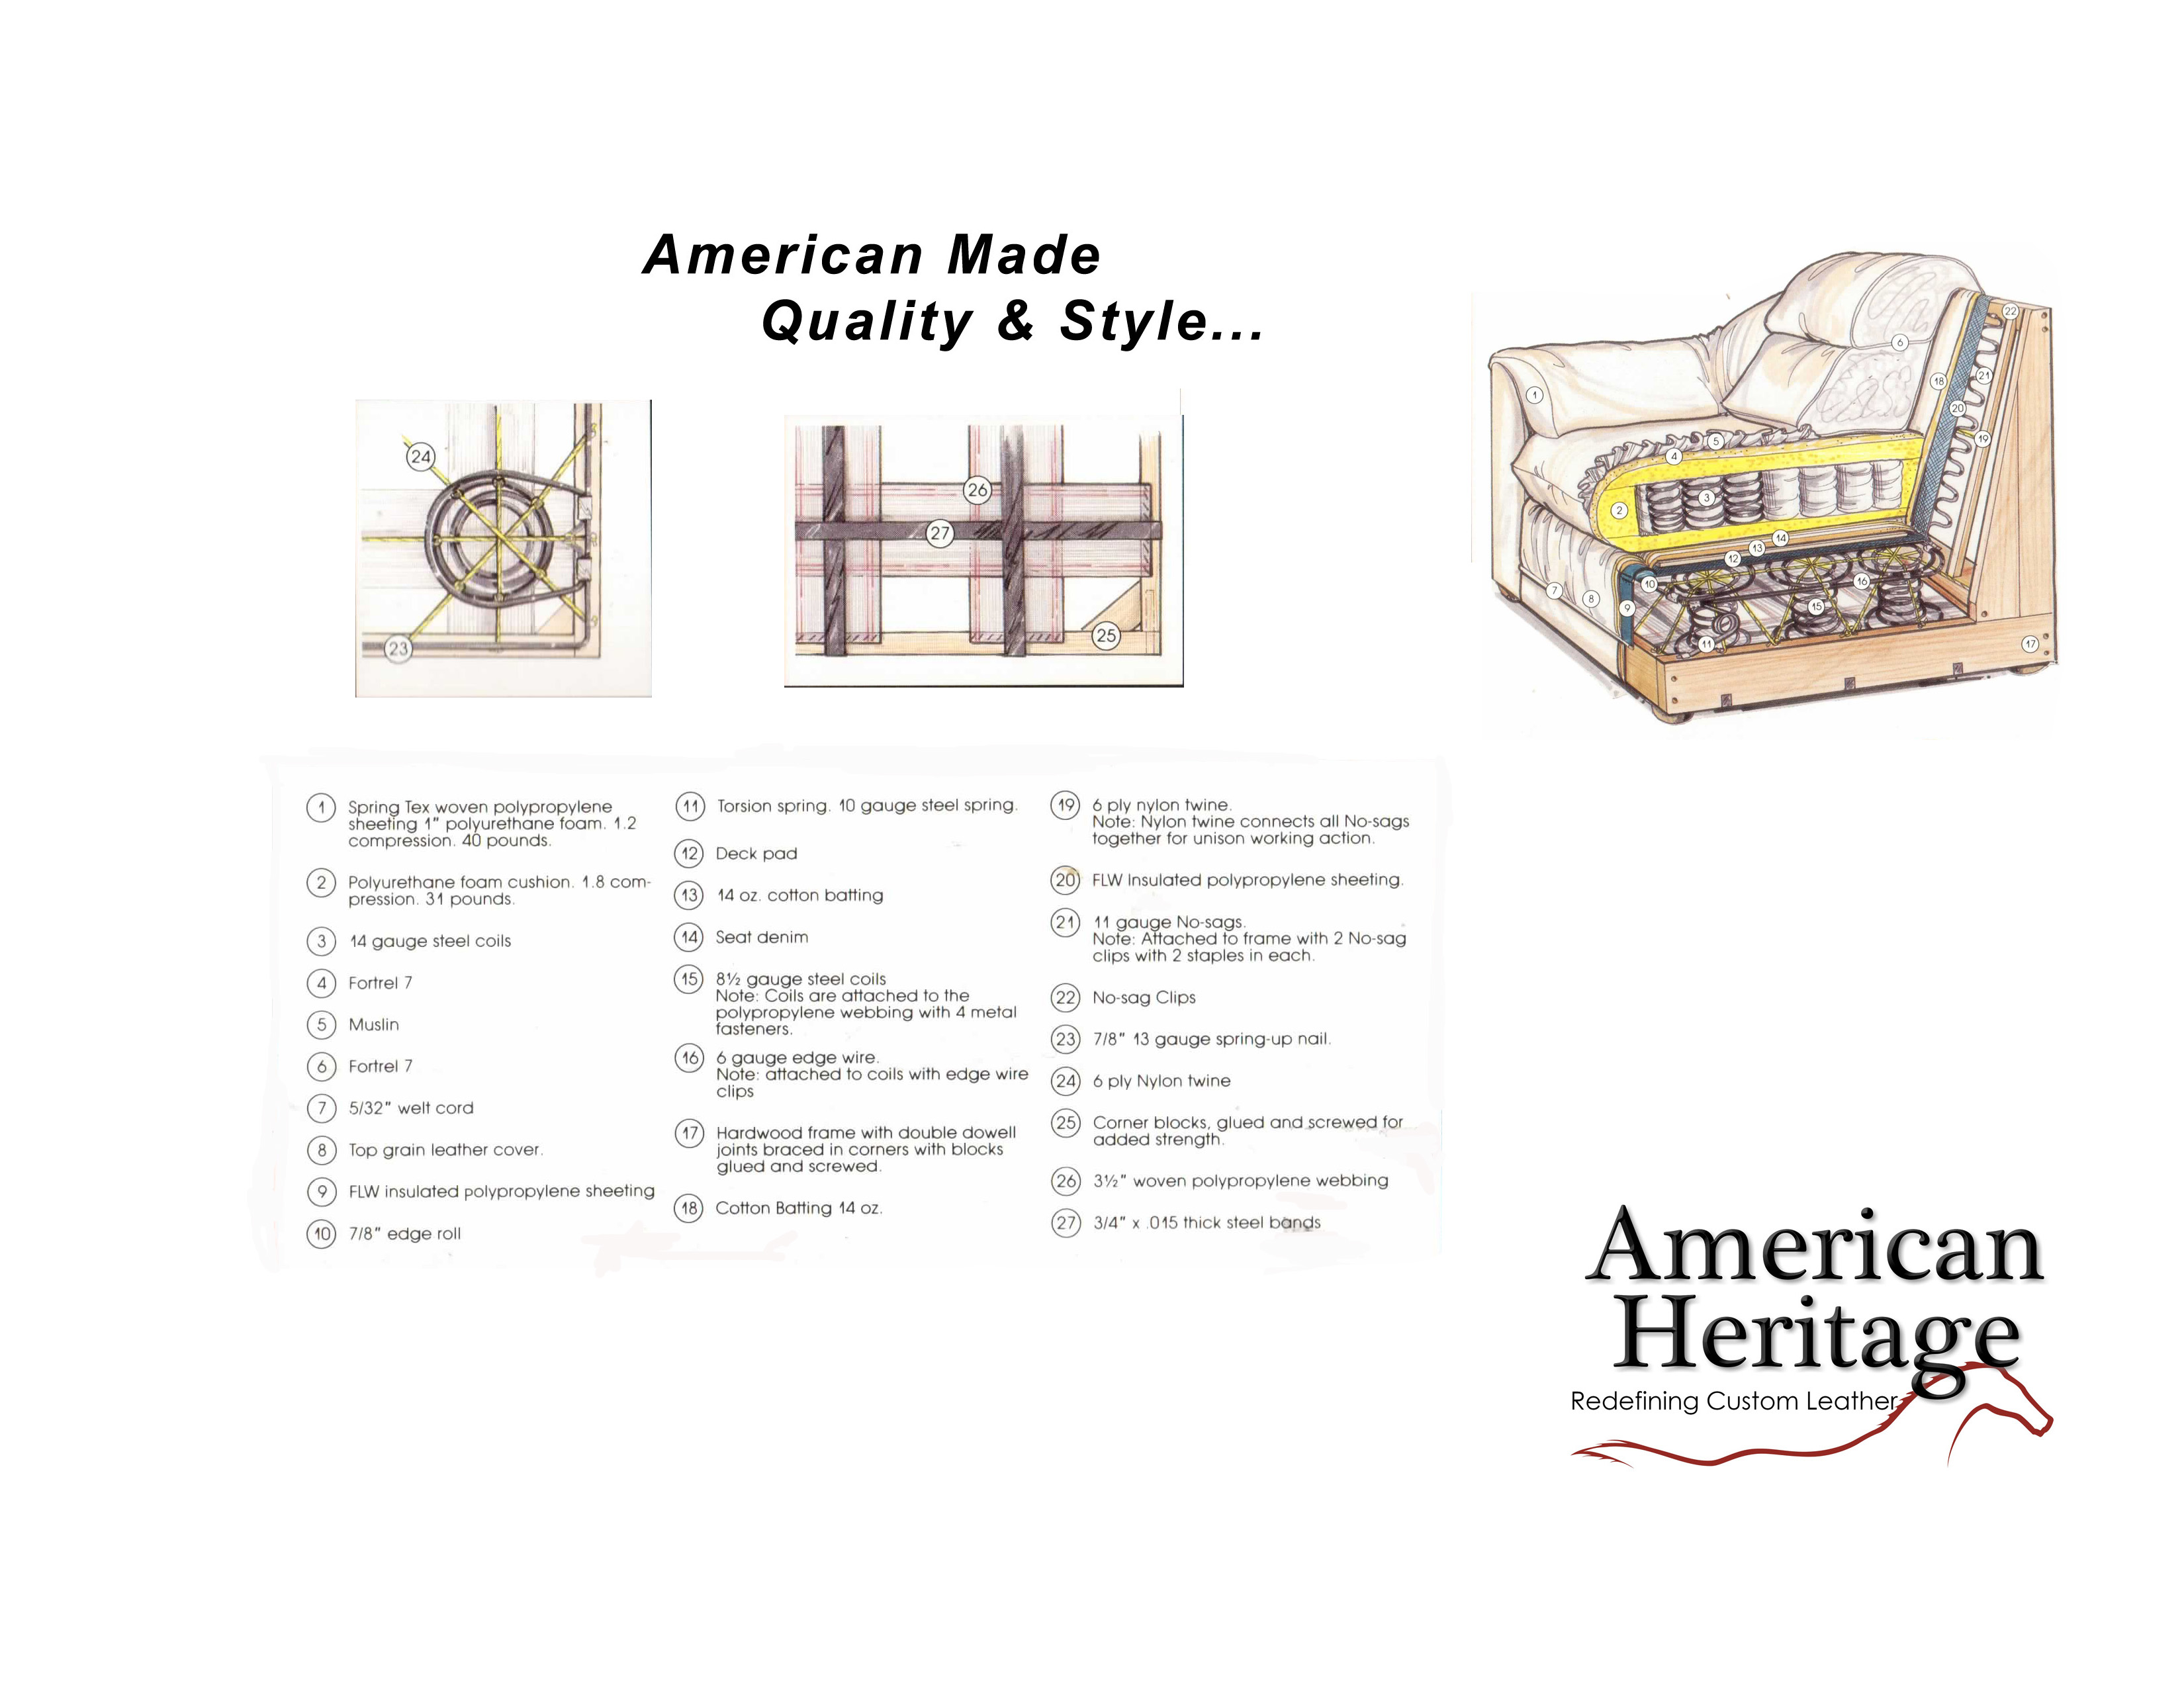 American heritage Quality Construction